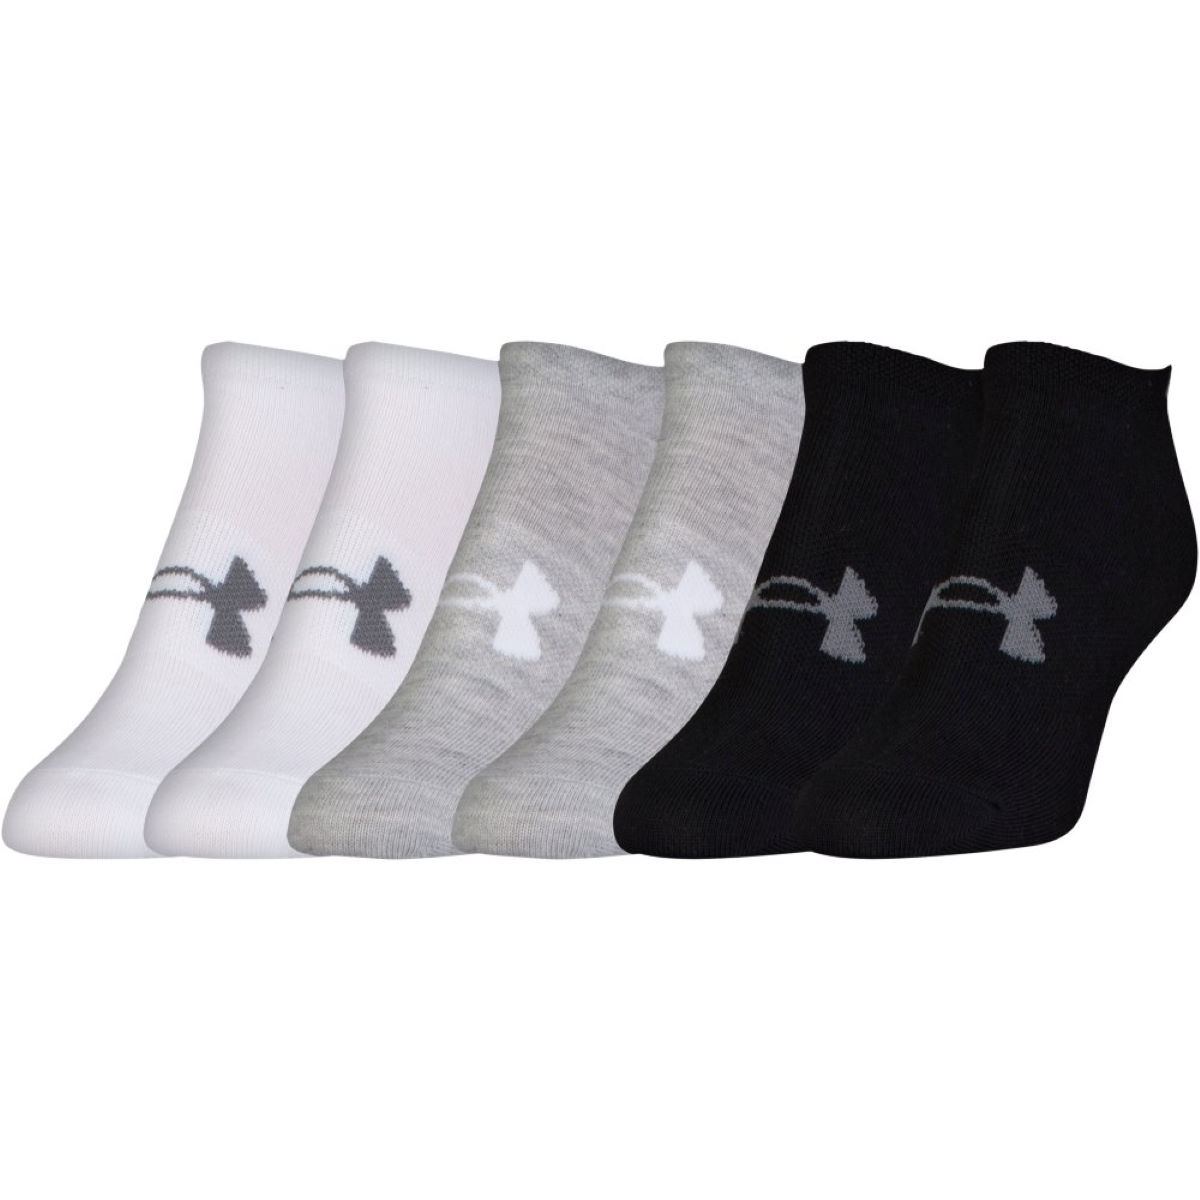 Chaussettes Femme Under Armour Solid No Show (lot de 6, PE17) - M